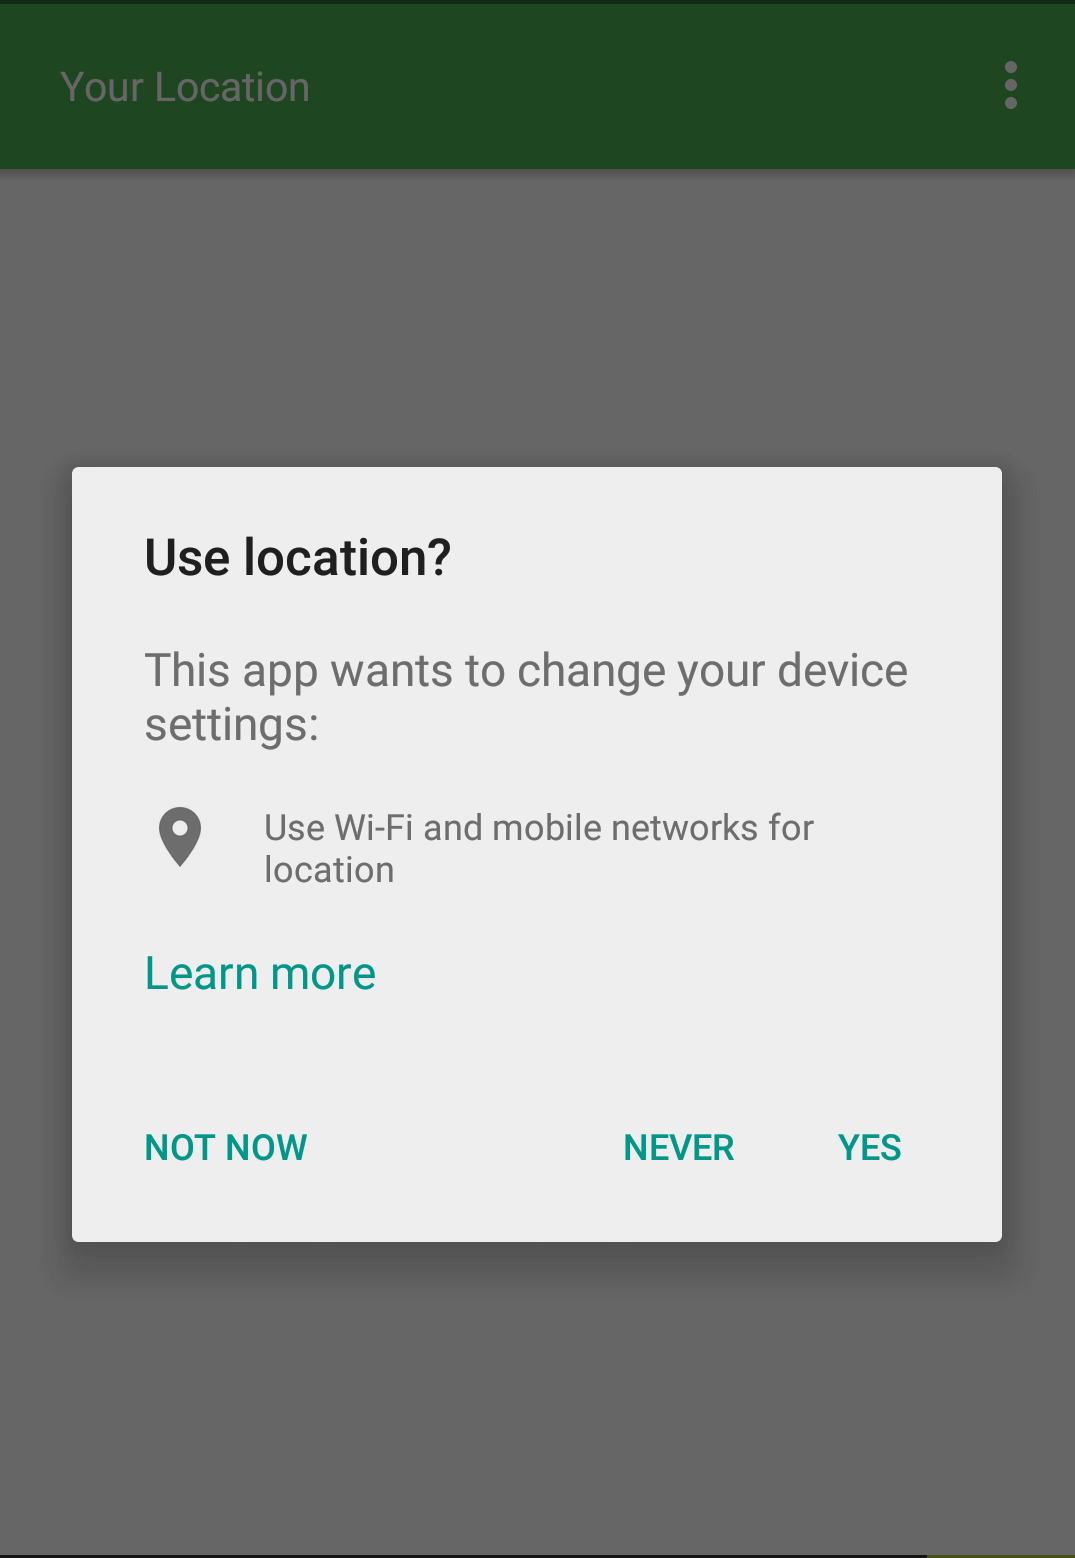 Enable location services - Places